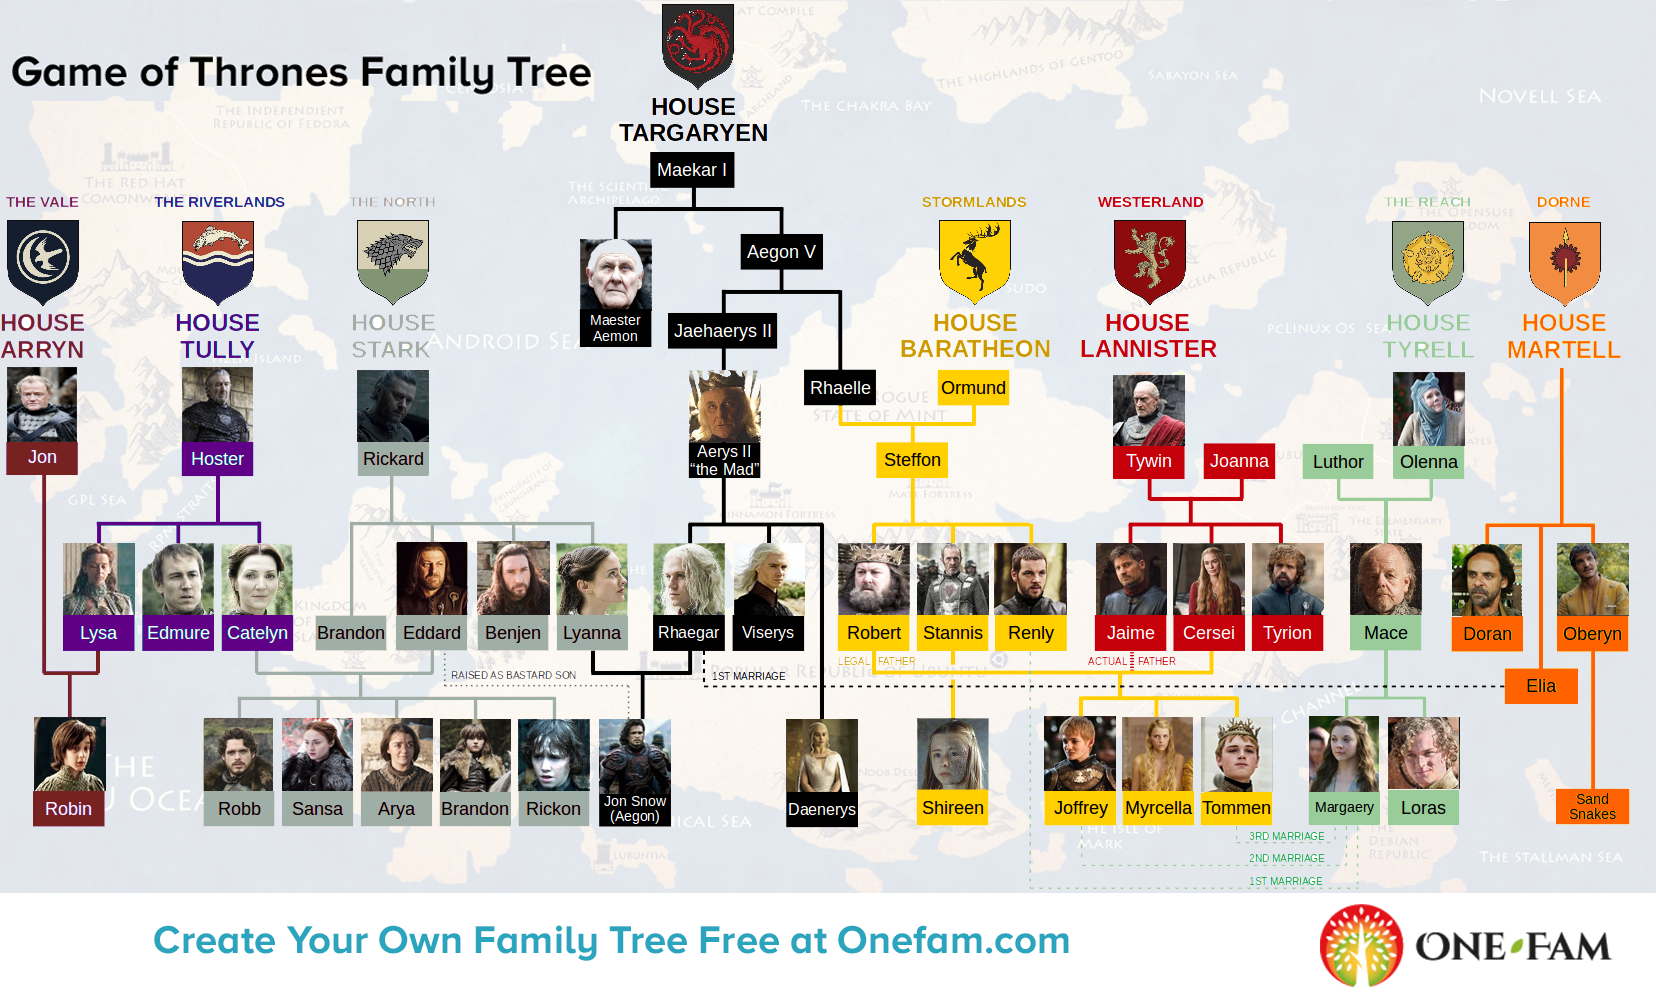 Game of Thrones Family Tree How the Characters are